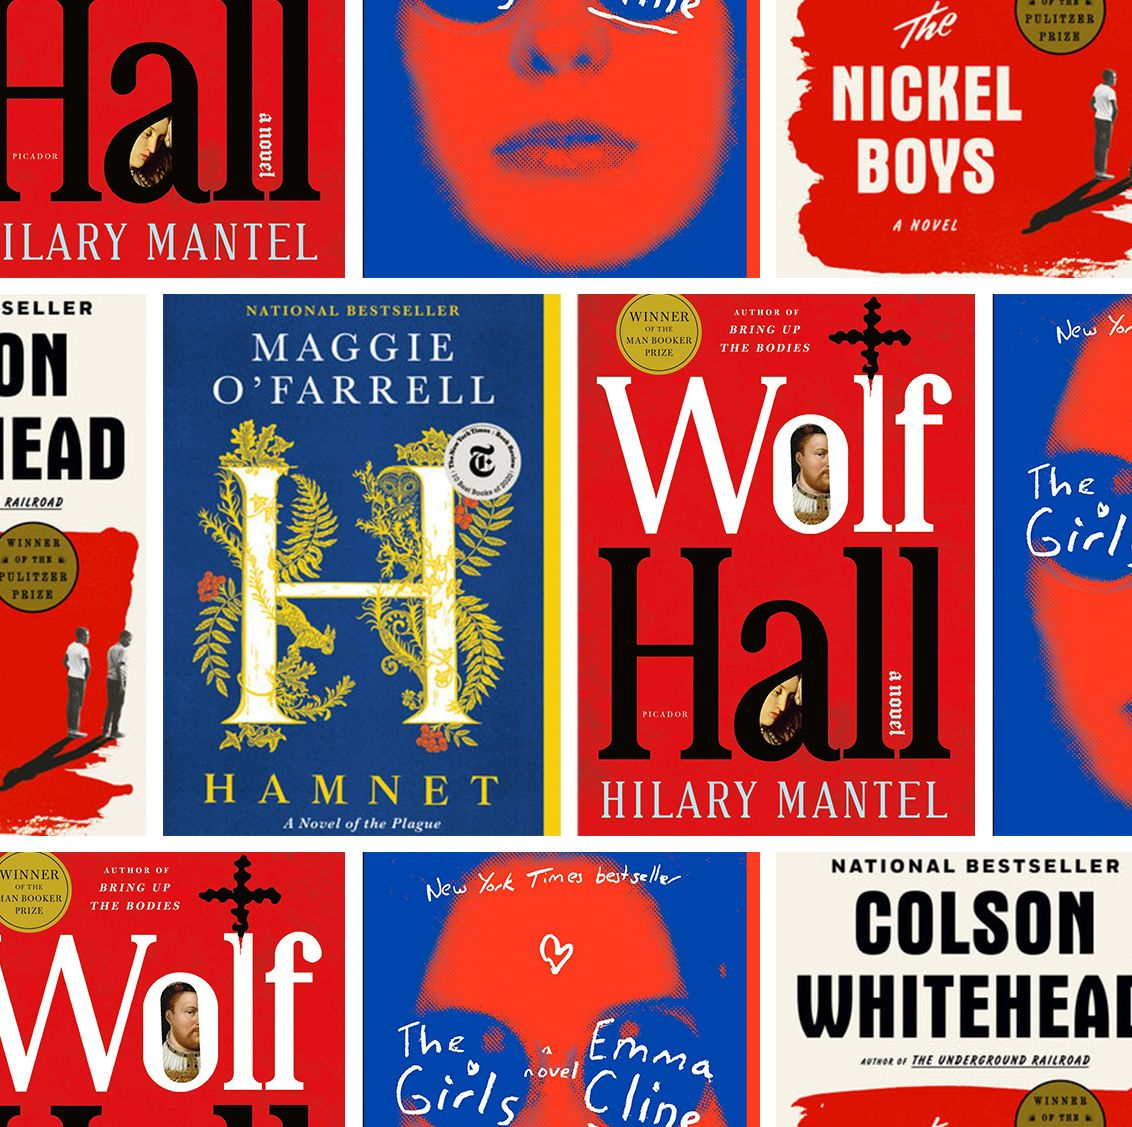 The 11 Best Books Based on True Stories